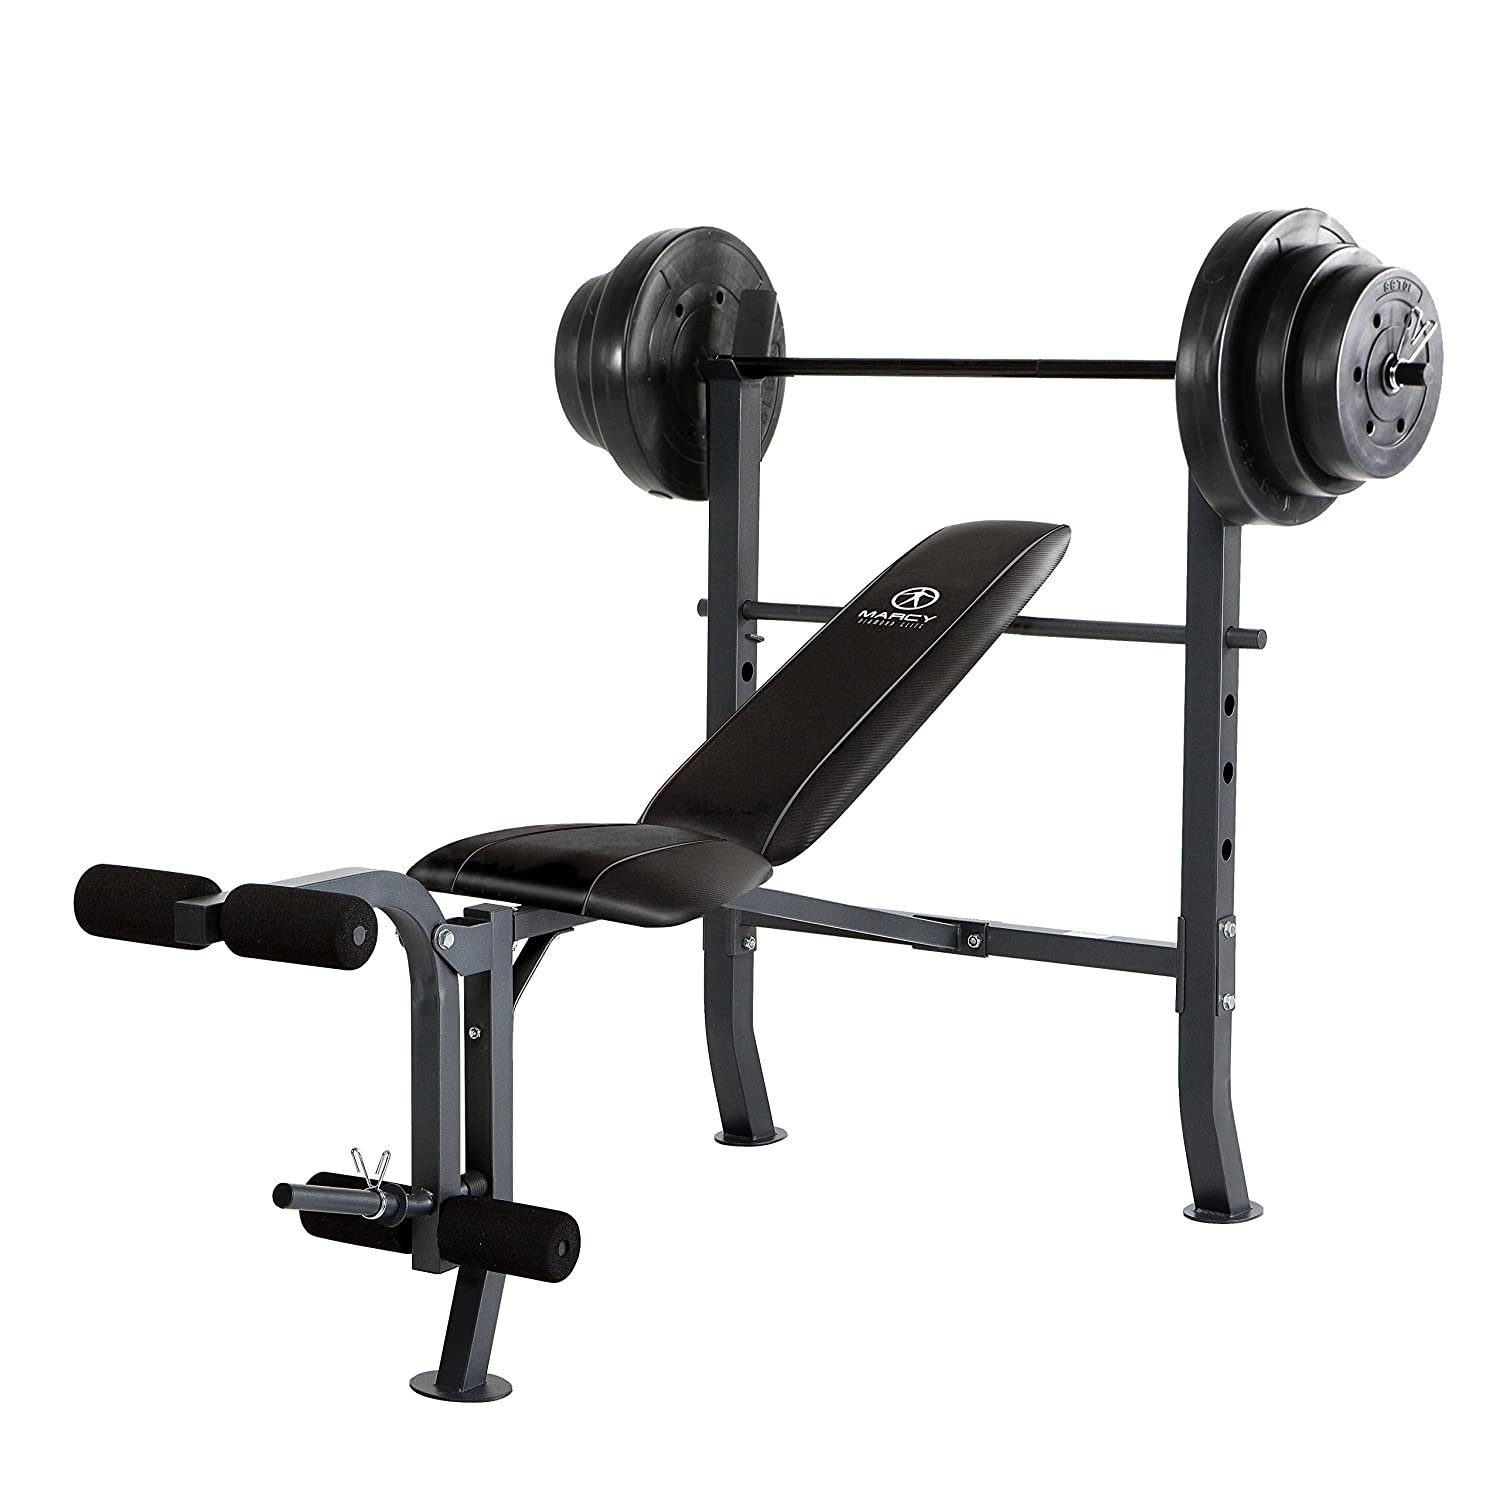 weights dp uk bodymax and co amazon outdoors sports adjustable weight bench